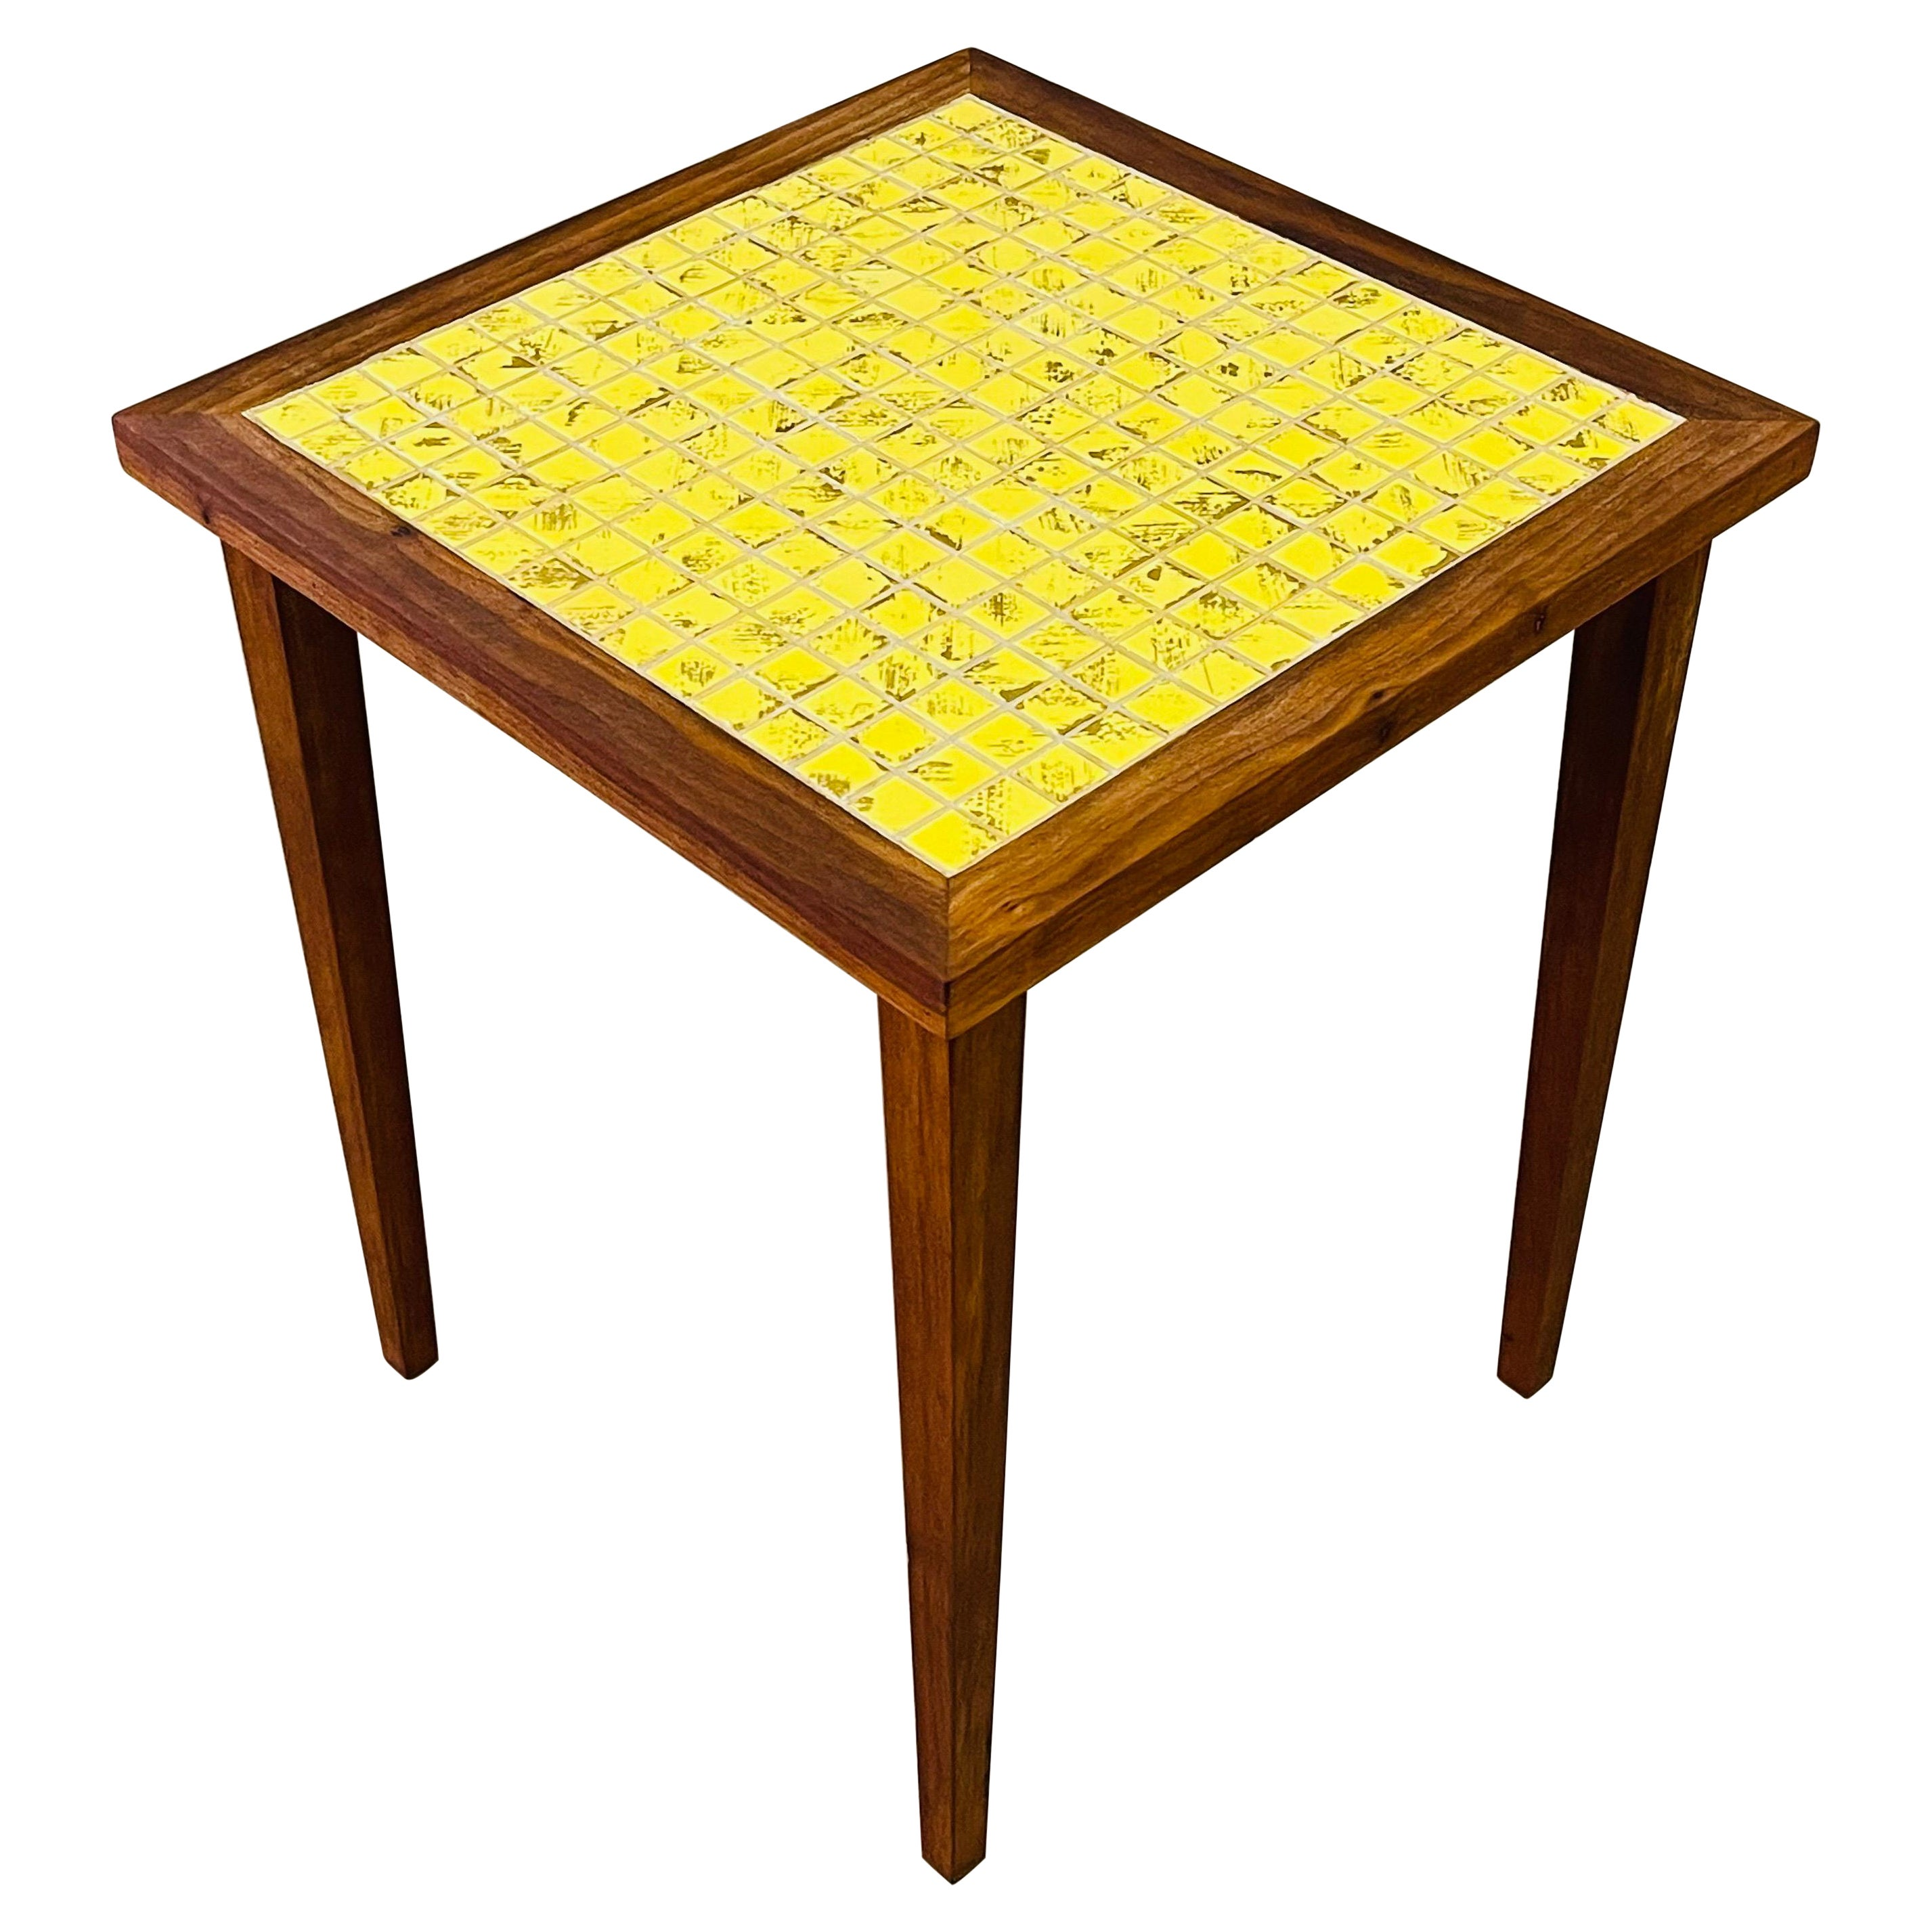 1960s Square Tile Top Side Table